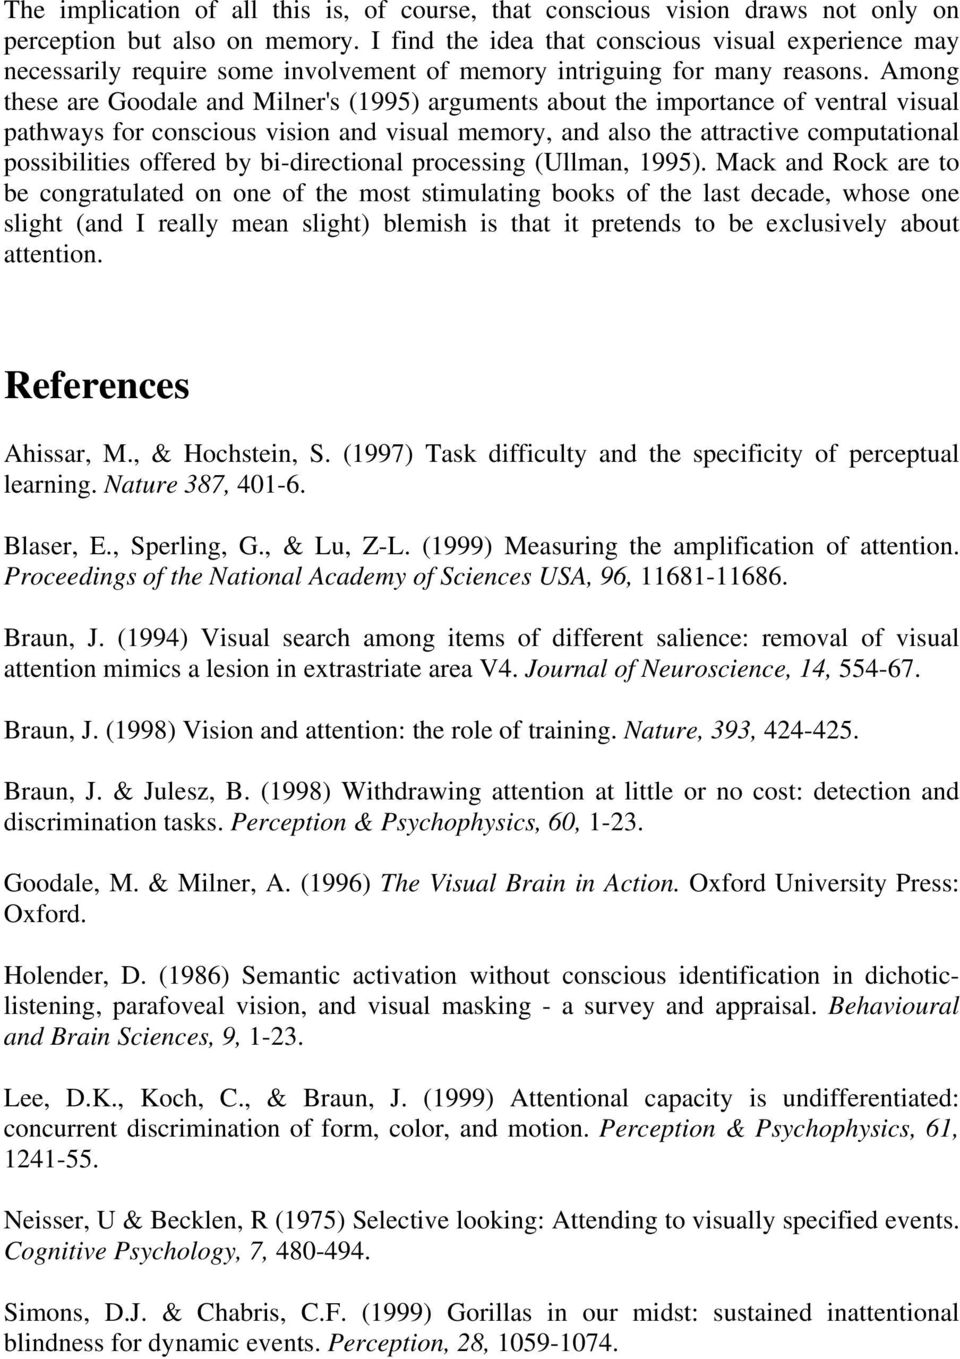 Among these are Goodale and Milner's (1995) arguments about the importance of ventral visual pathways for conscious vision and visual memory, and also the attractive computational possibilities